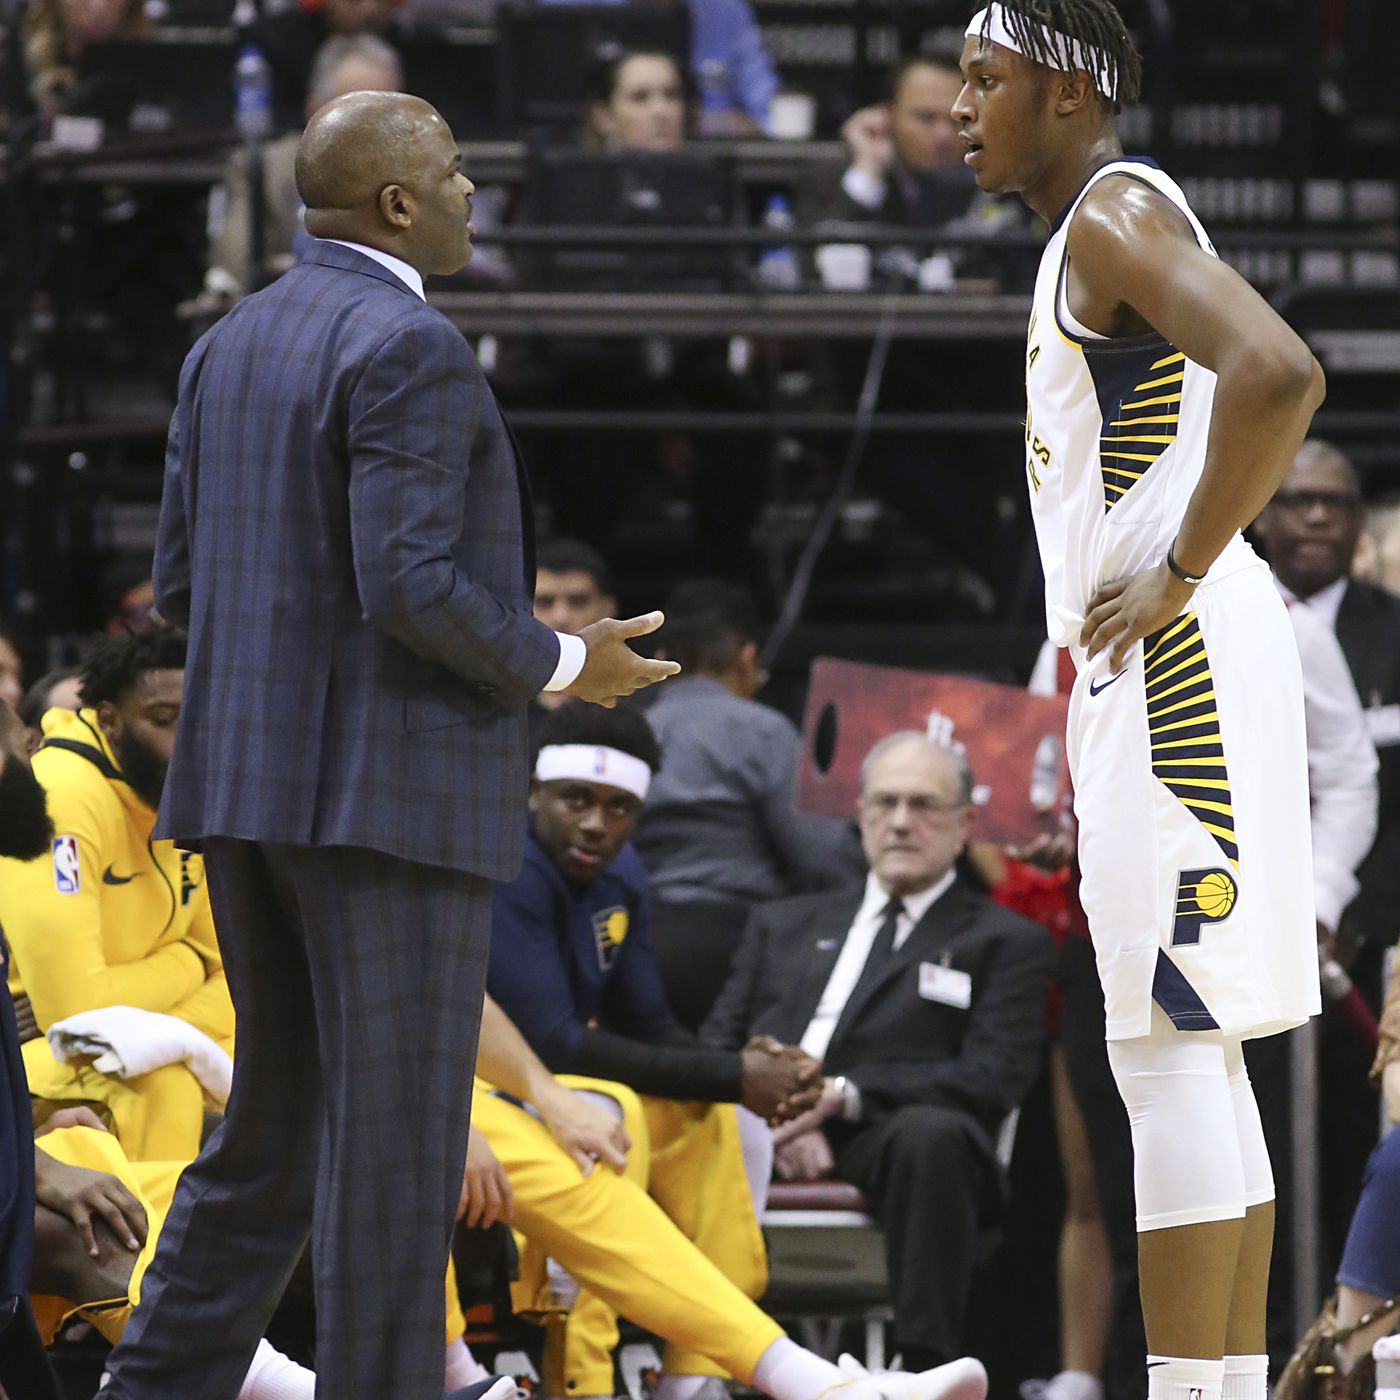 57c1a375d46 IC Cold Links  Pacers wear Hickory and City uniforms this weekend - Indy  Cornrows